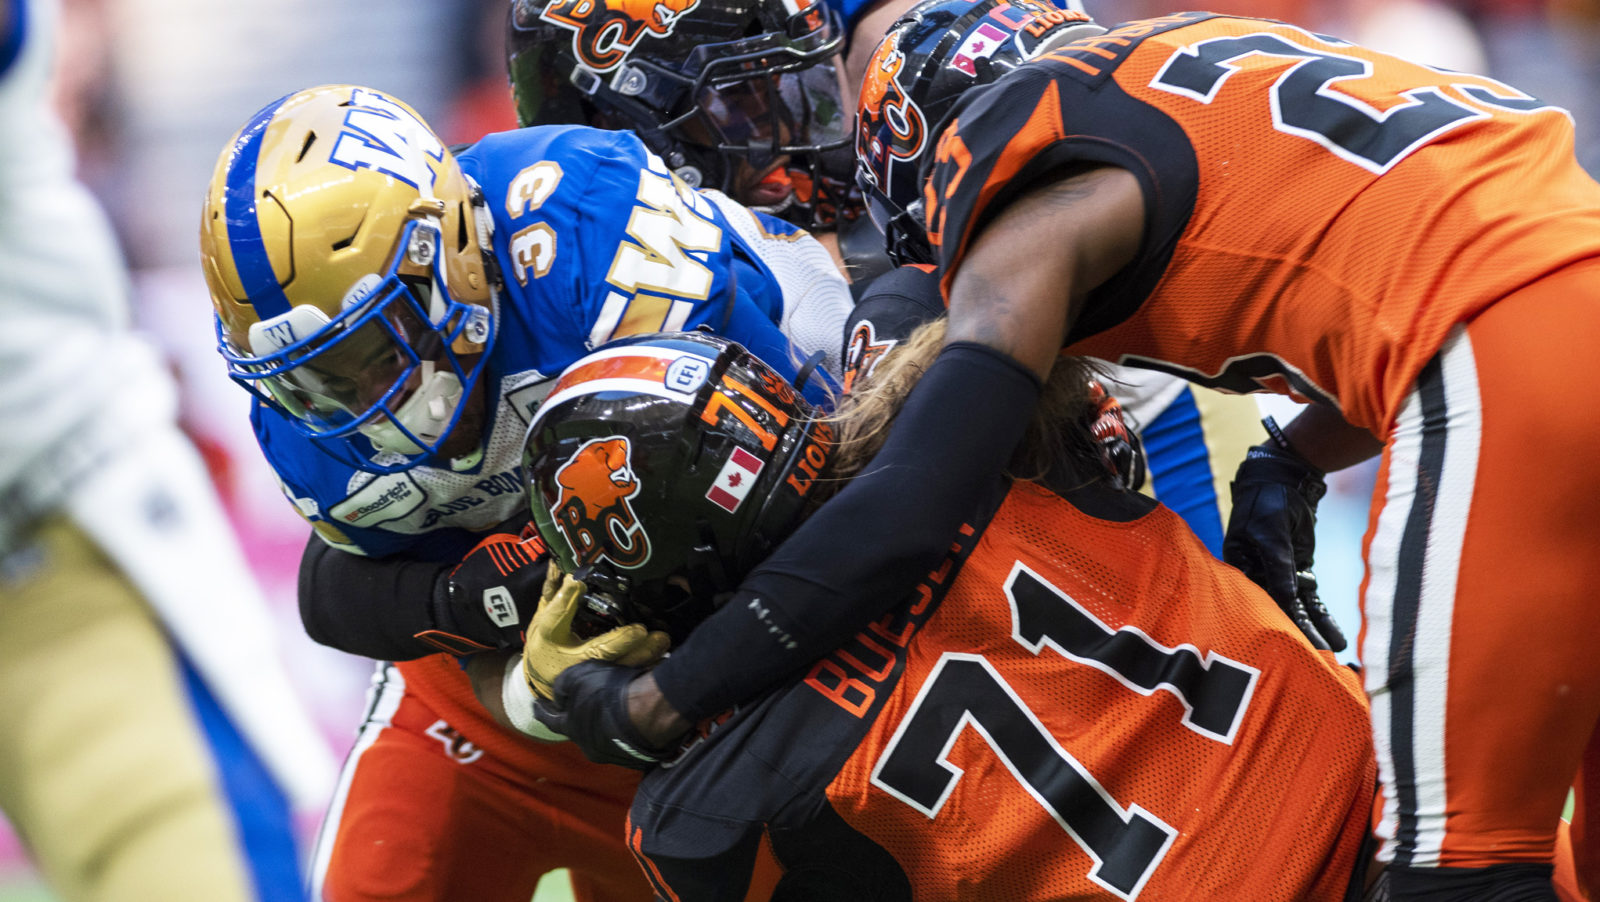 Playoff Rivals: A look at the history of the Lions, Bombers